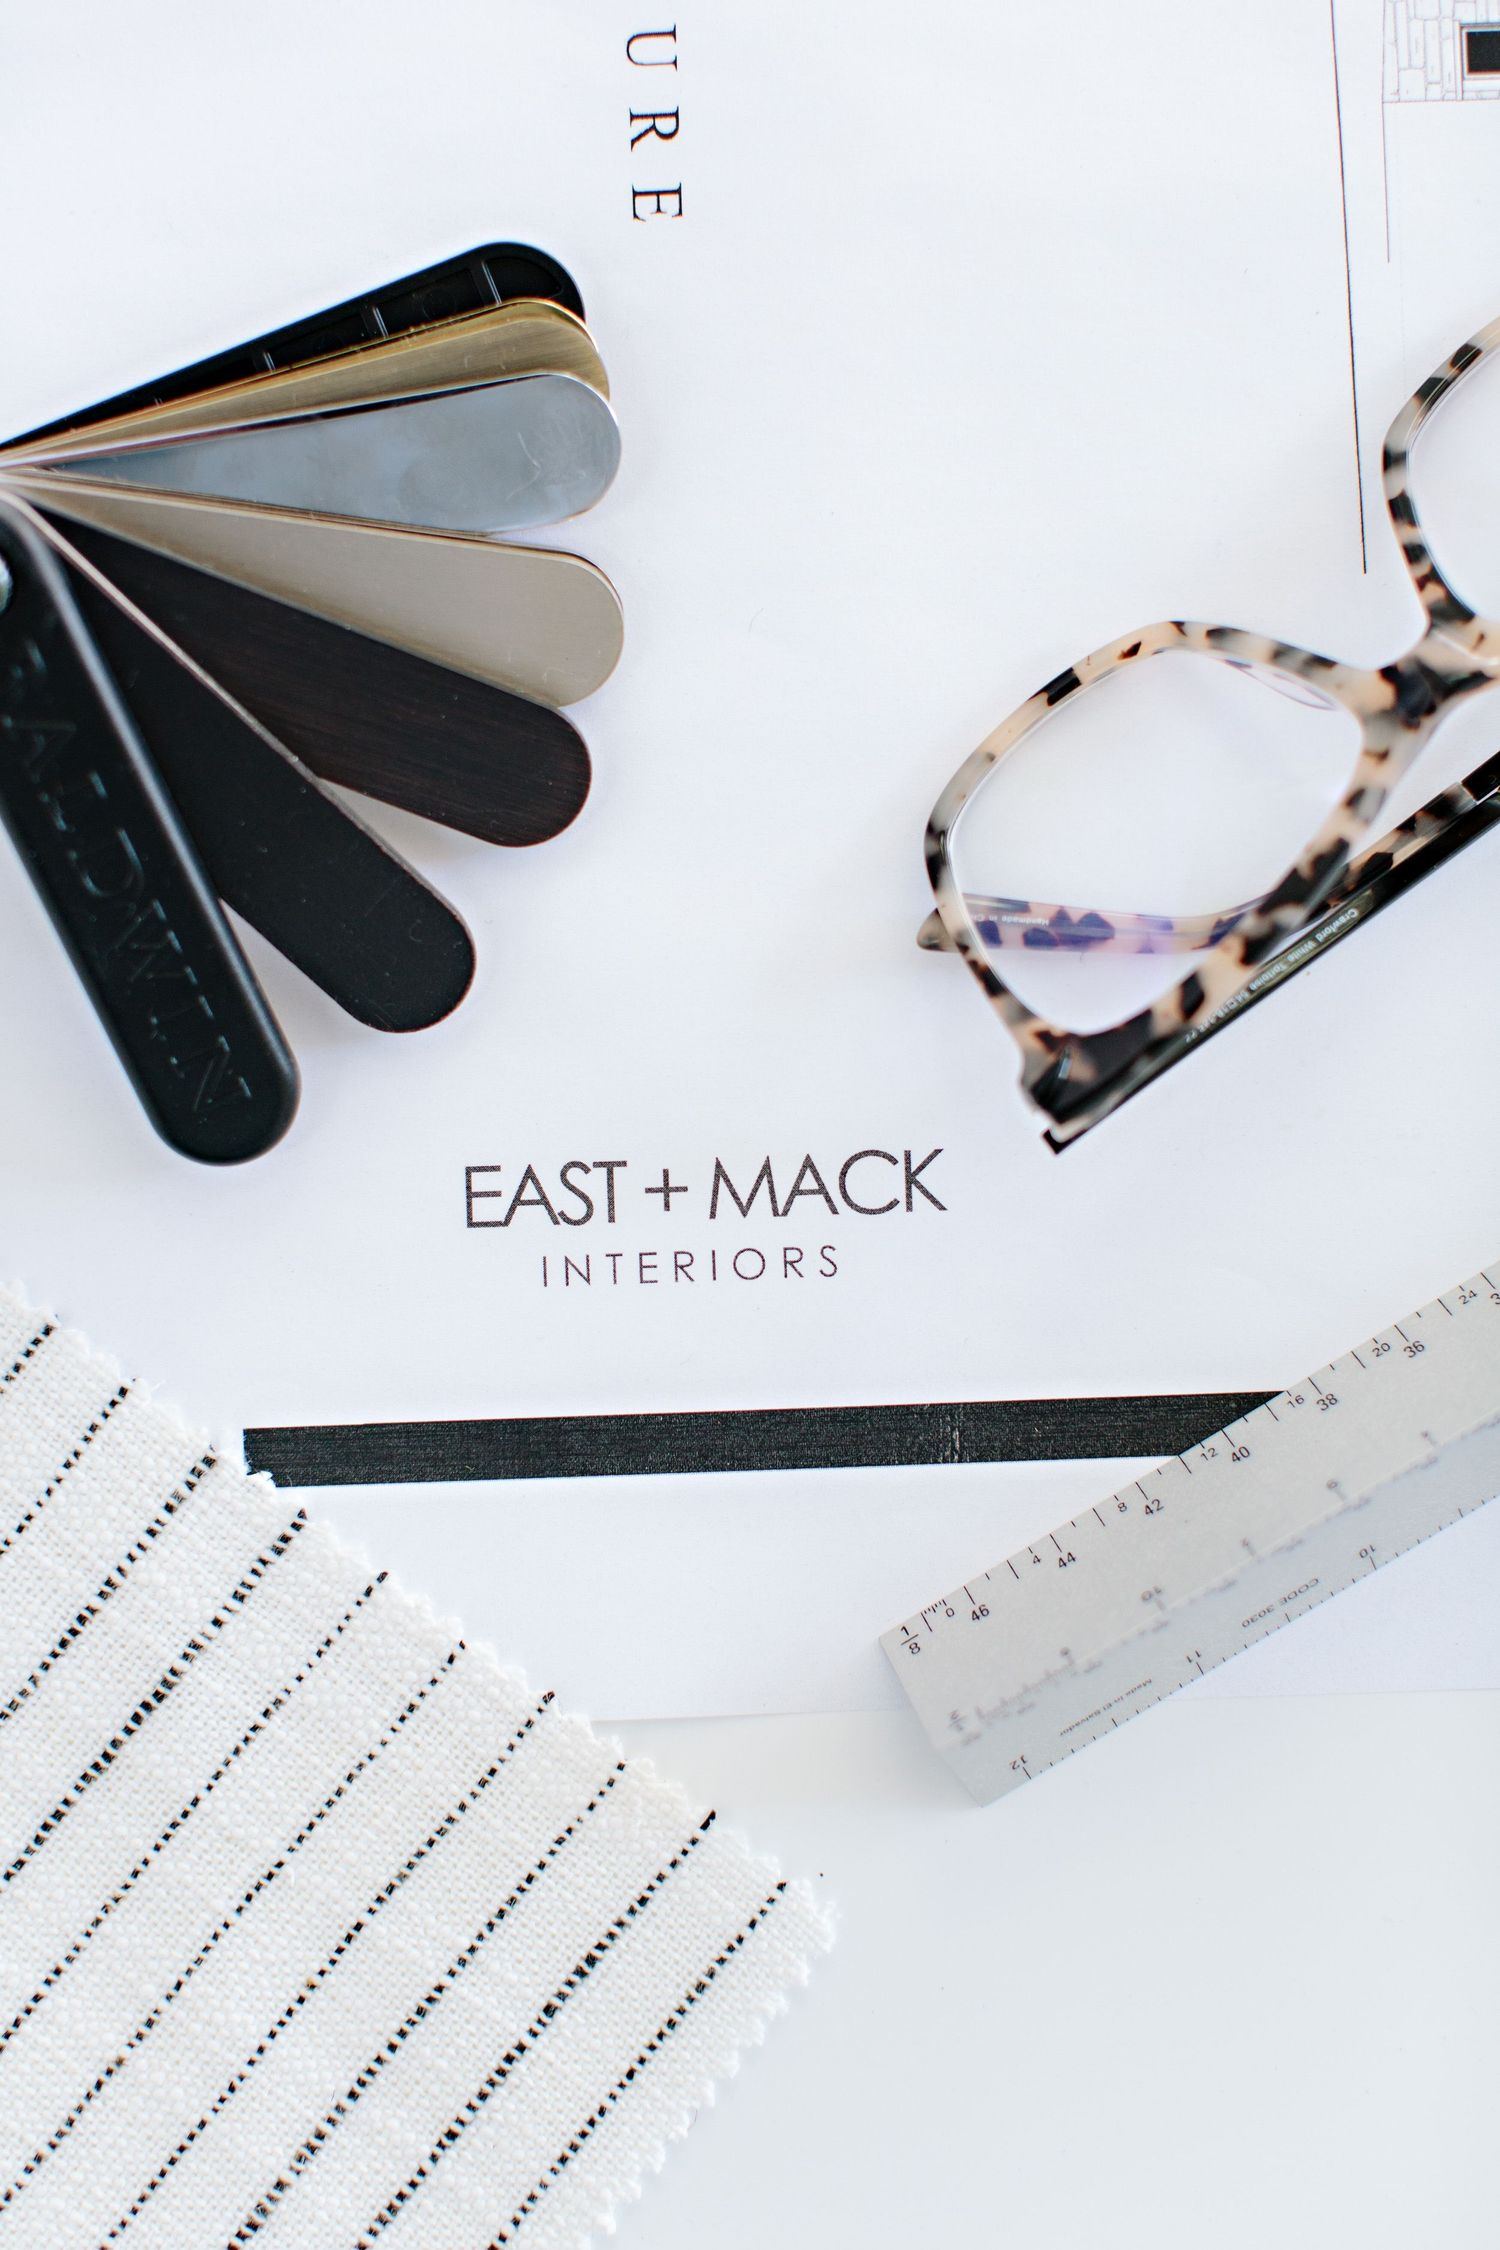 east + mack interiors details